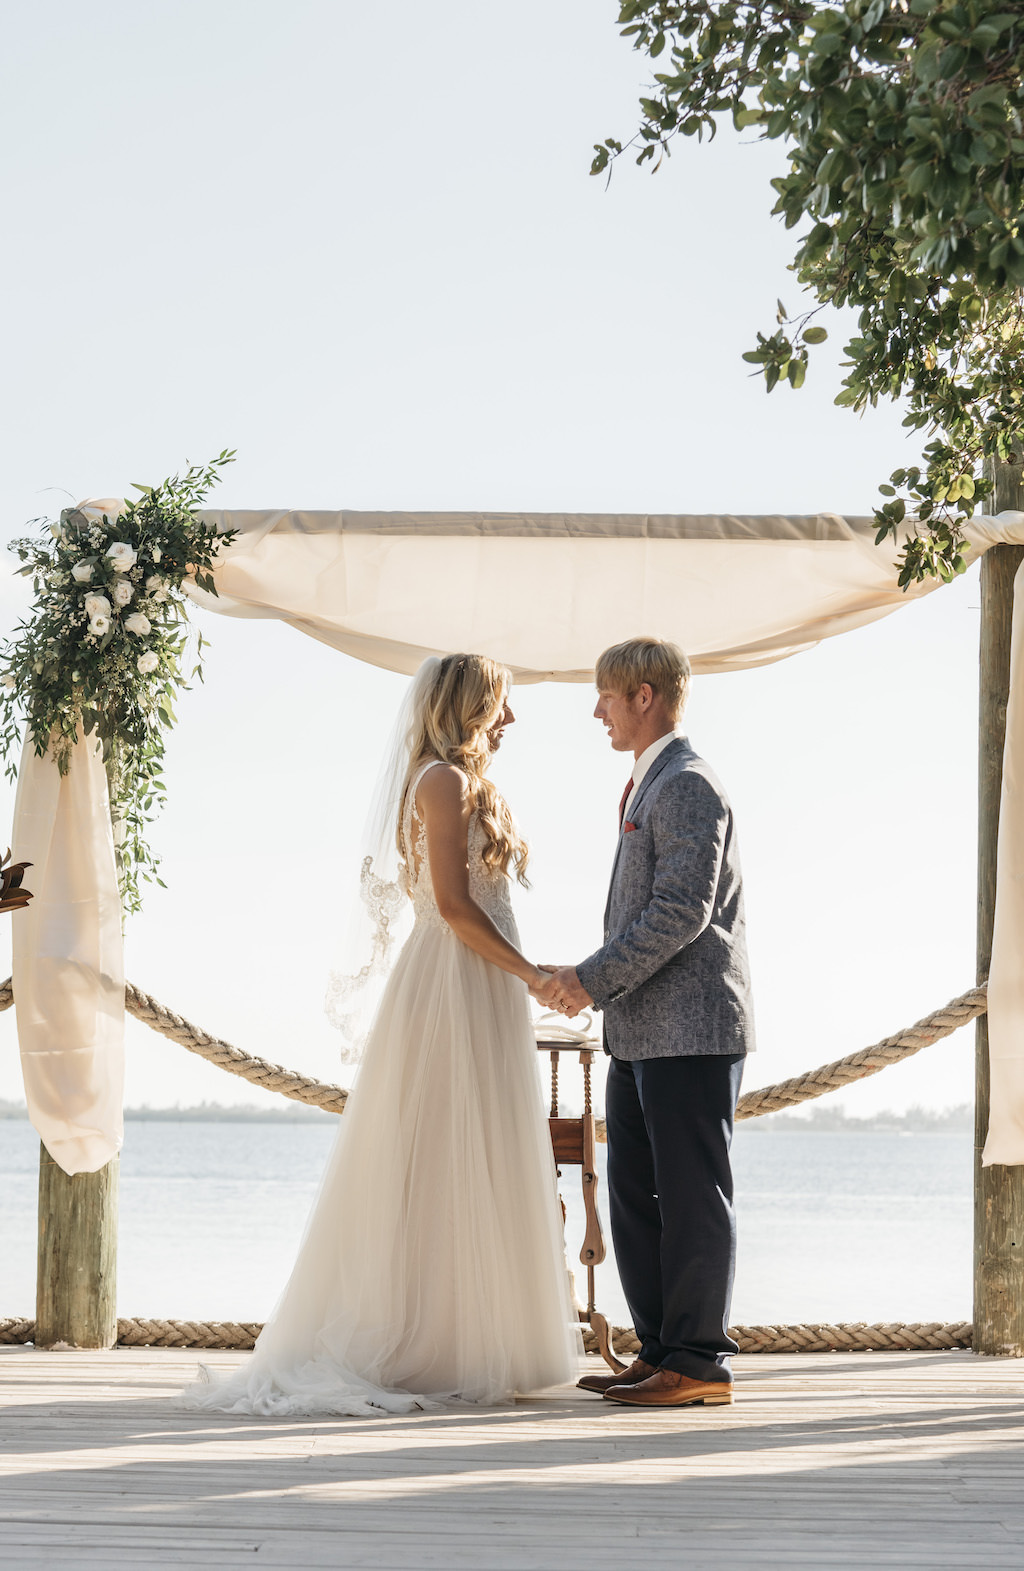 Outdoor Waterfront Bride and Groom Wedding Ceremony Portrait, Arch with White Draping and White and Greenery Bouquet | Tampa Bay Wedding Planner Kelly Kennedy Weddings and Events